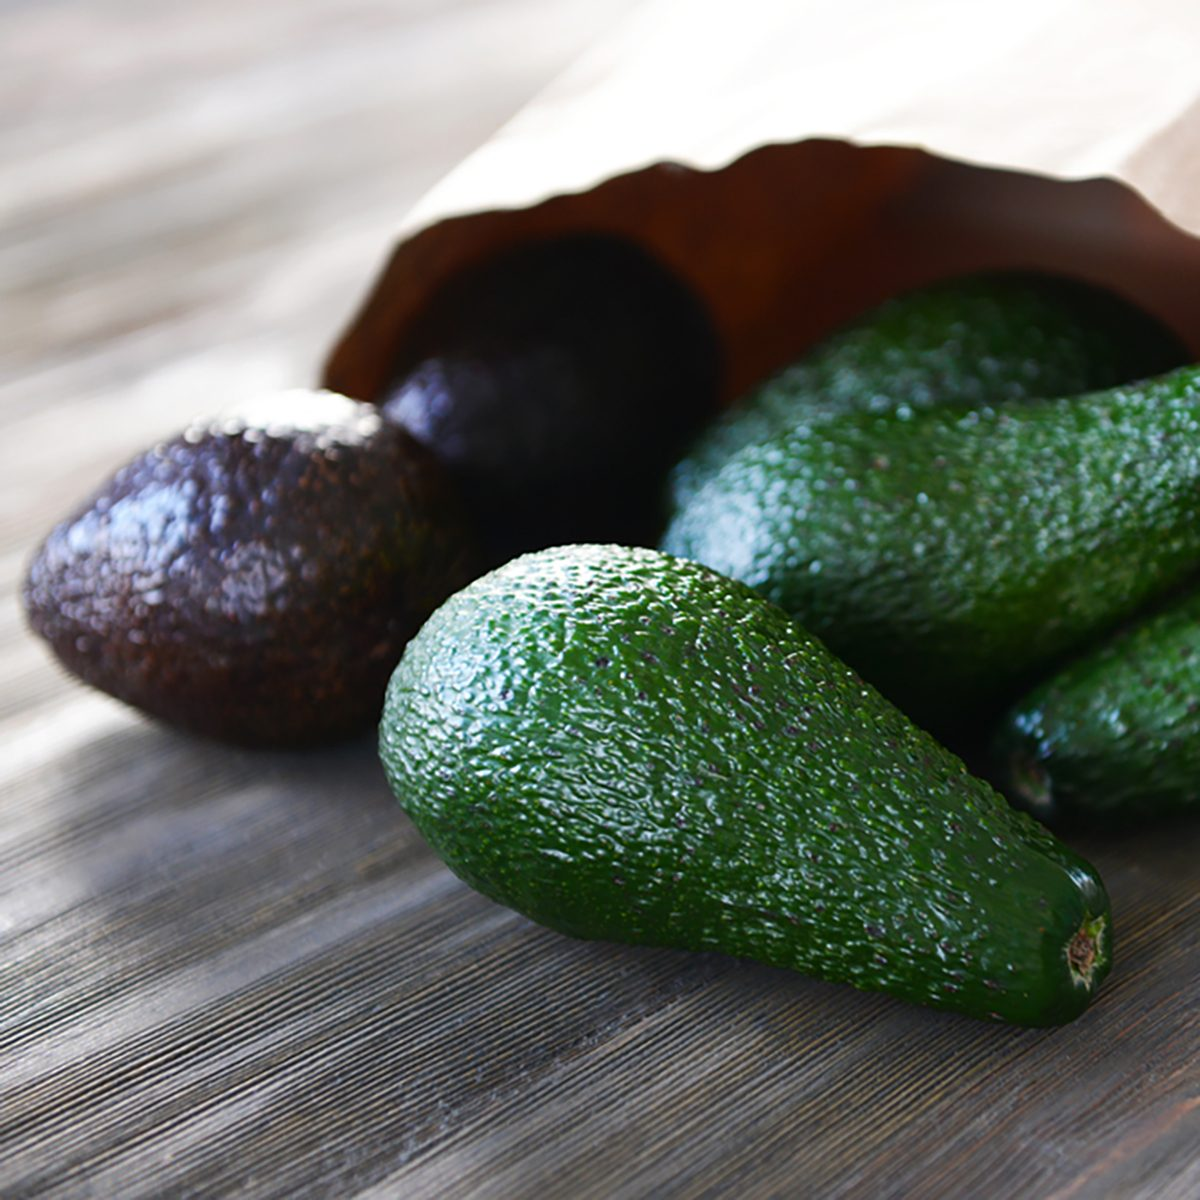 Fresh avocados in paper bag on wooden background;